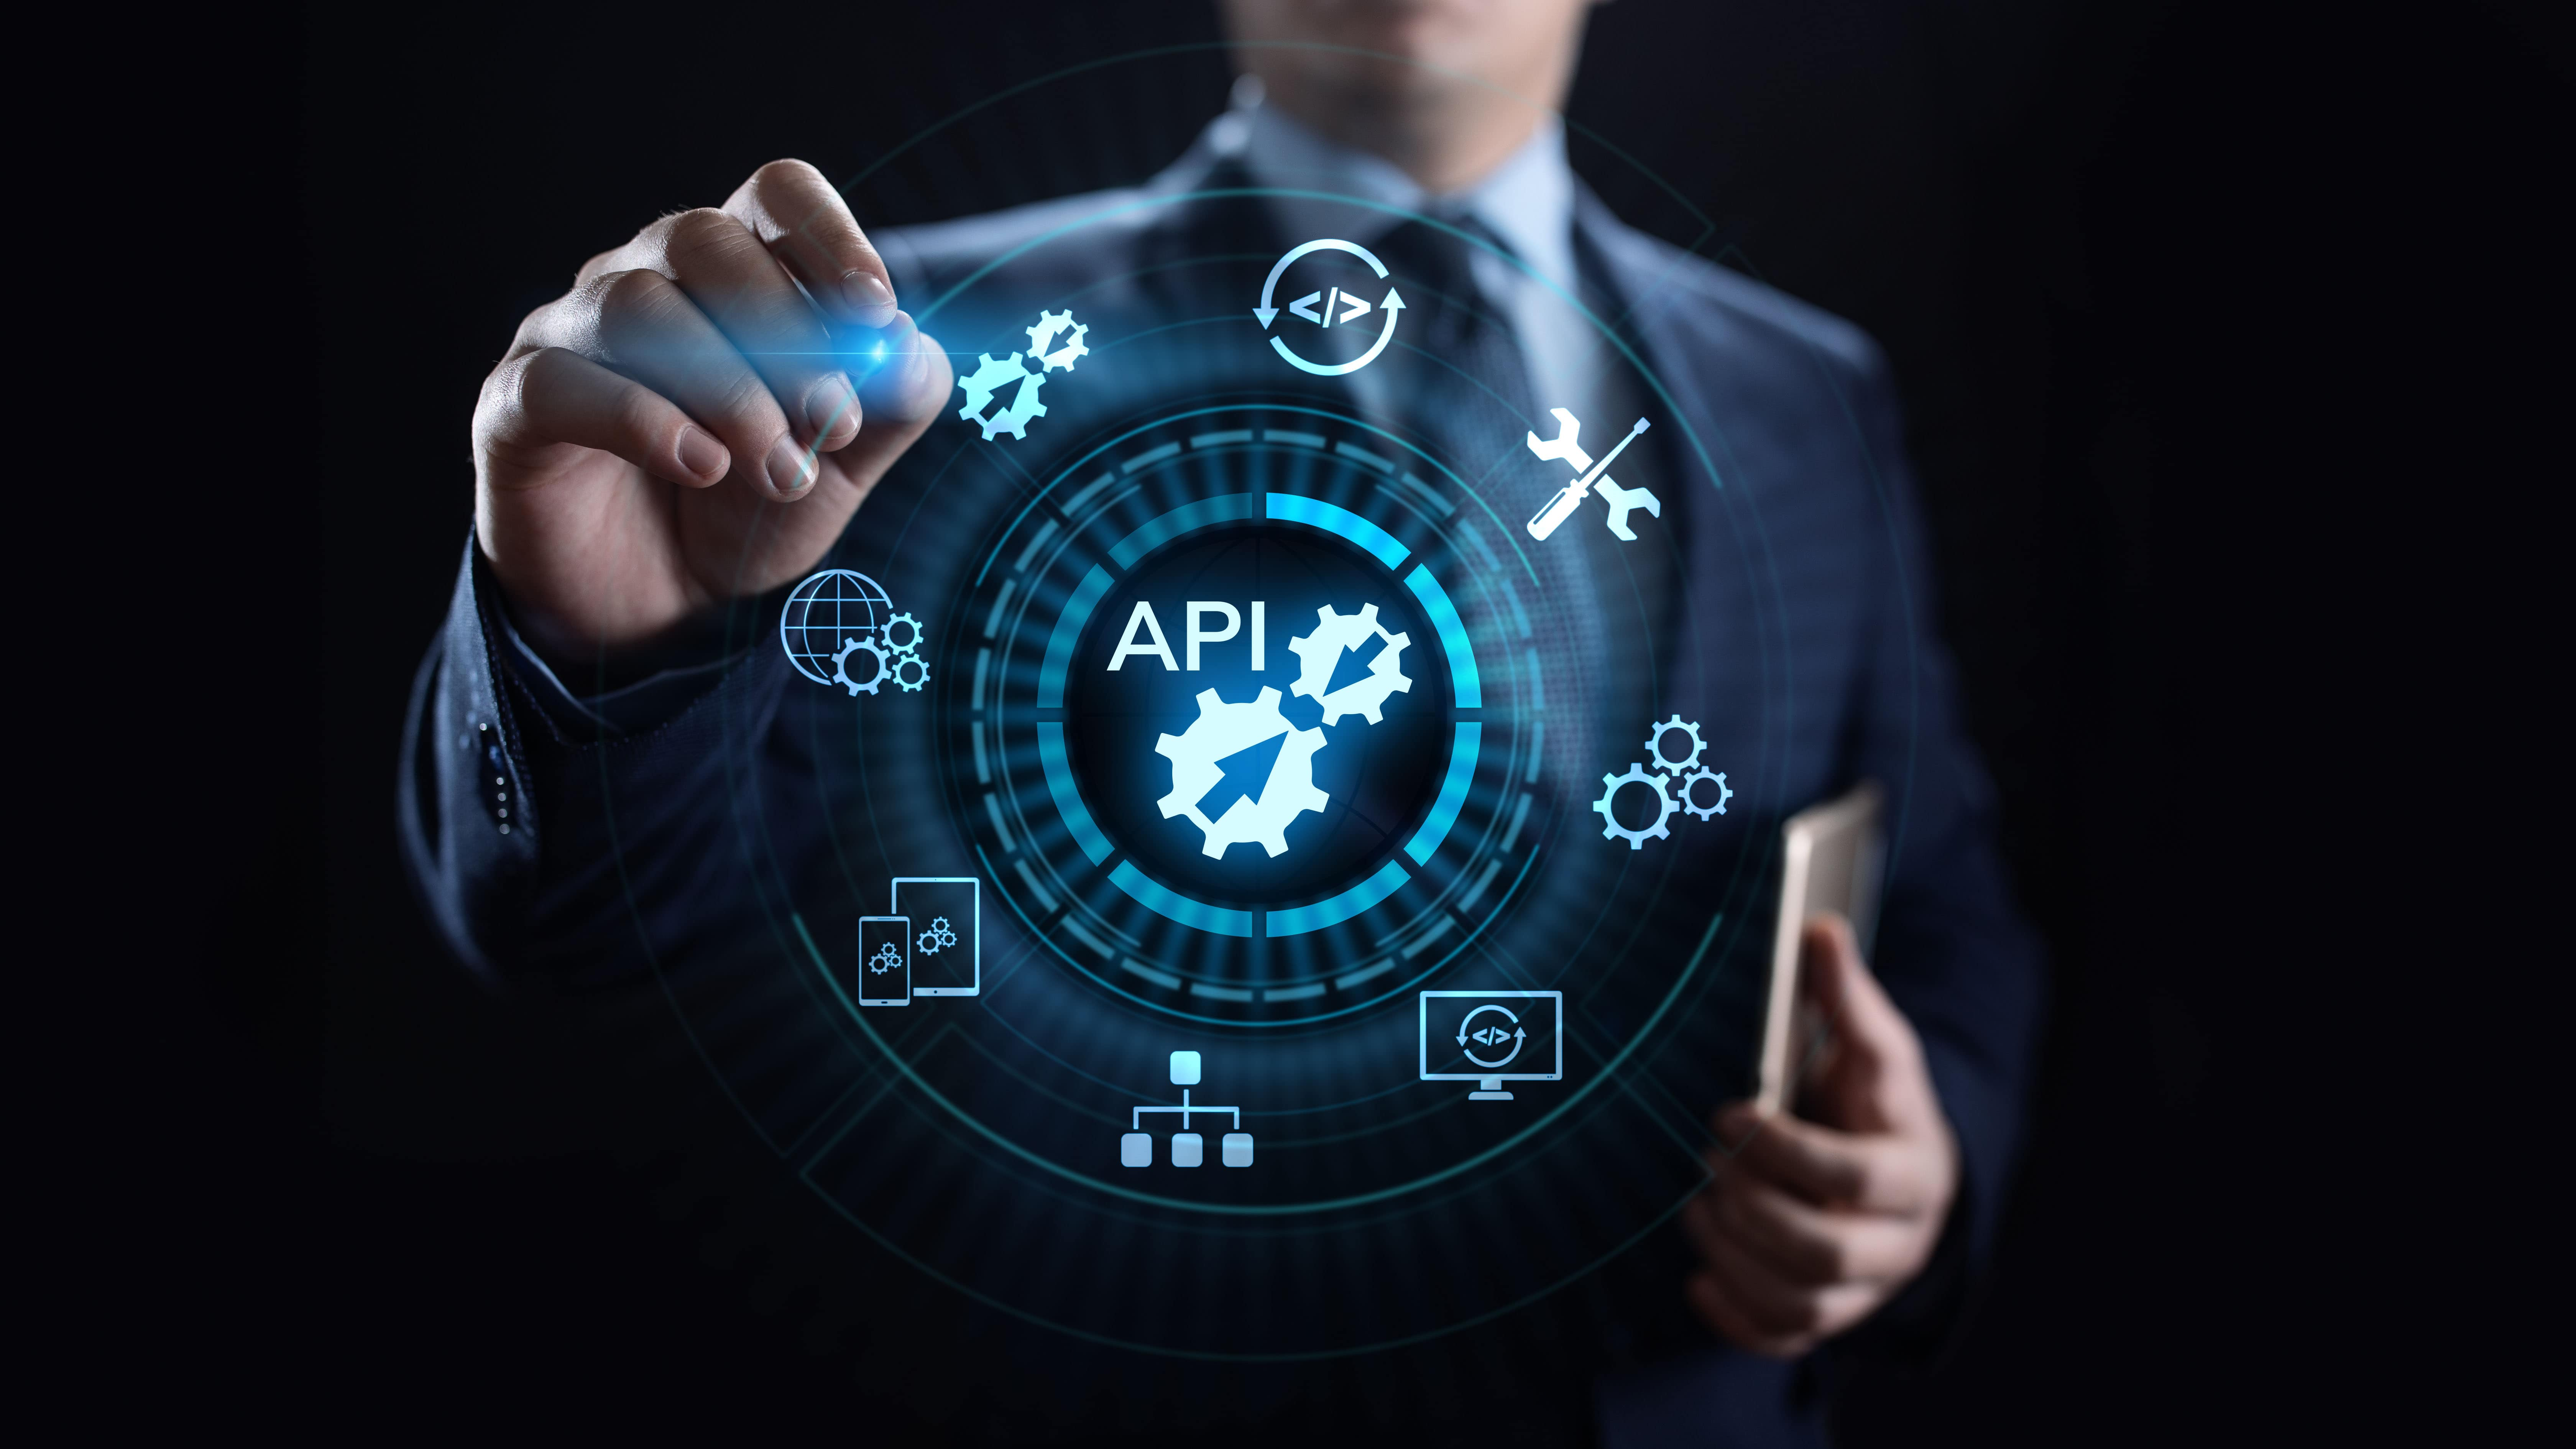 business man pointing to icons showing APIs and microservices